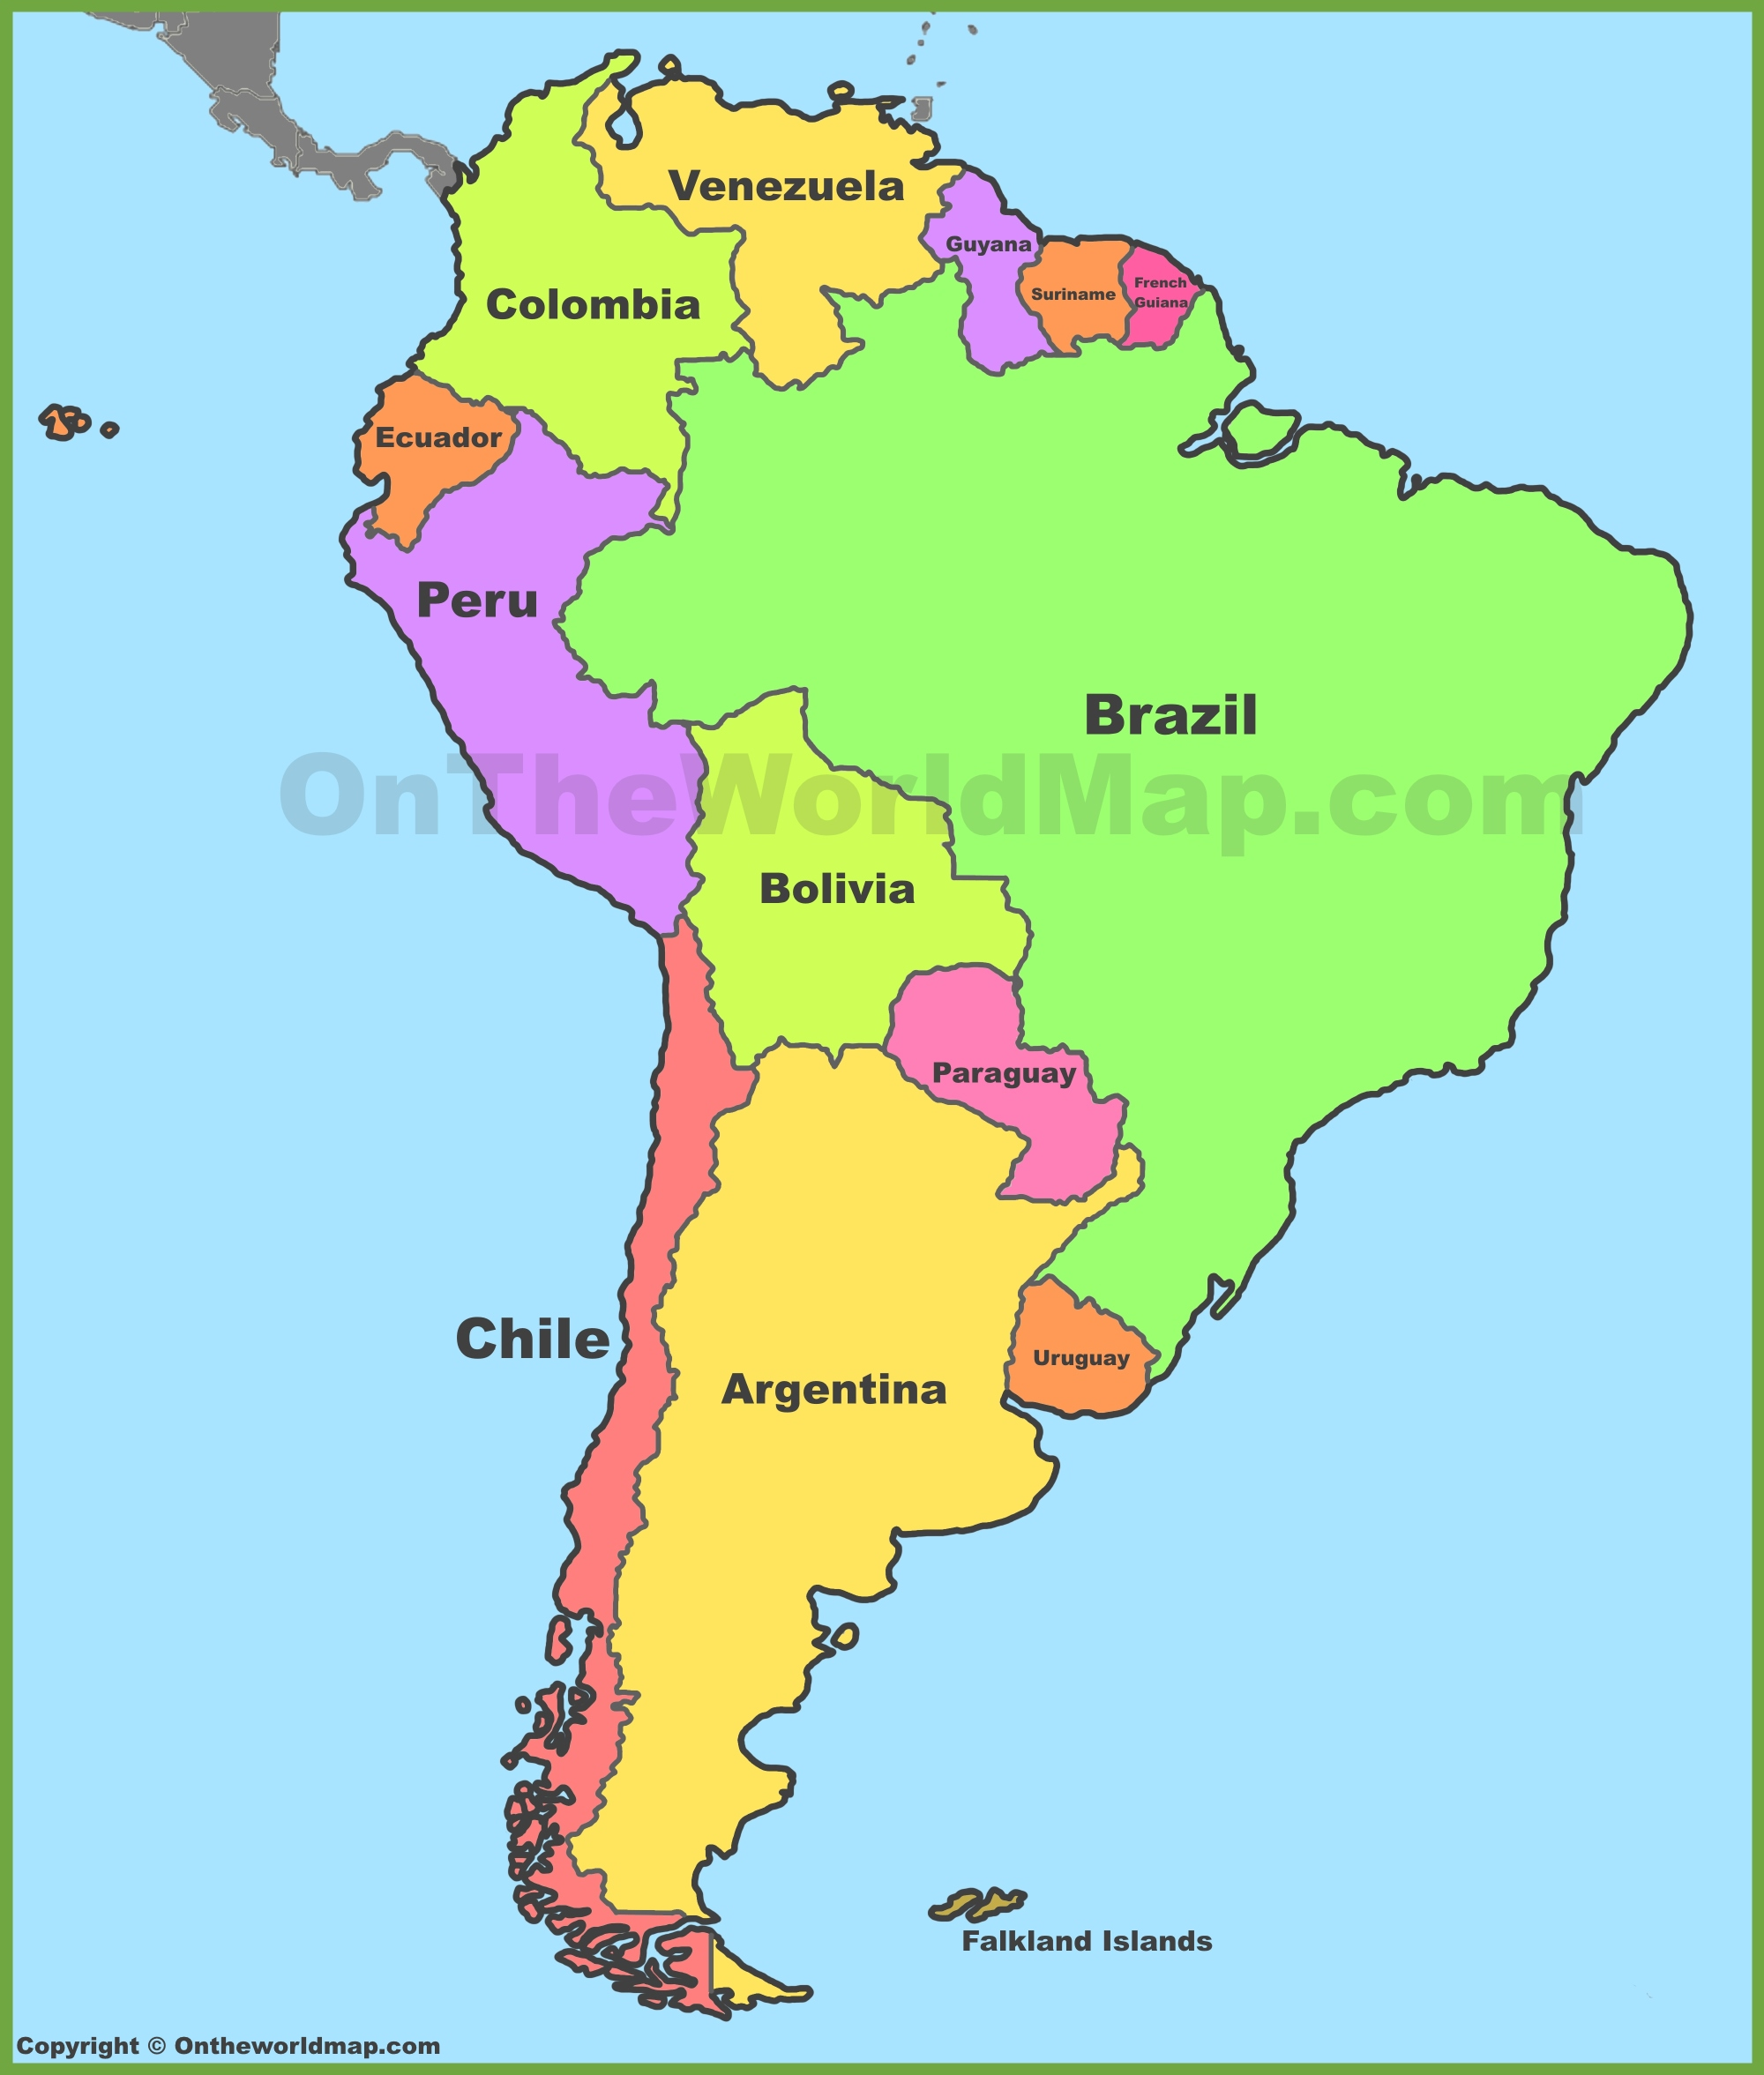 South America Maps South America Maps | Maps of South America   OnTheWorldMap.com